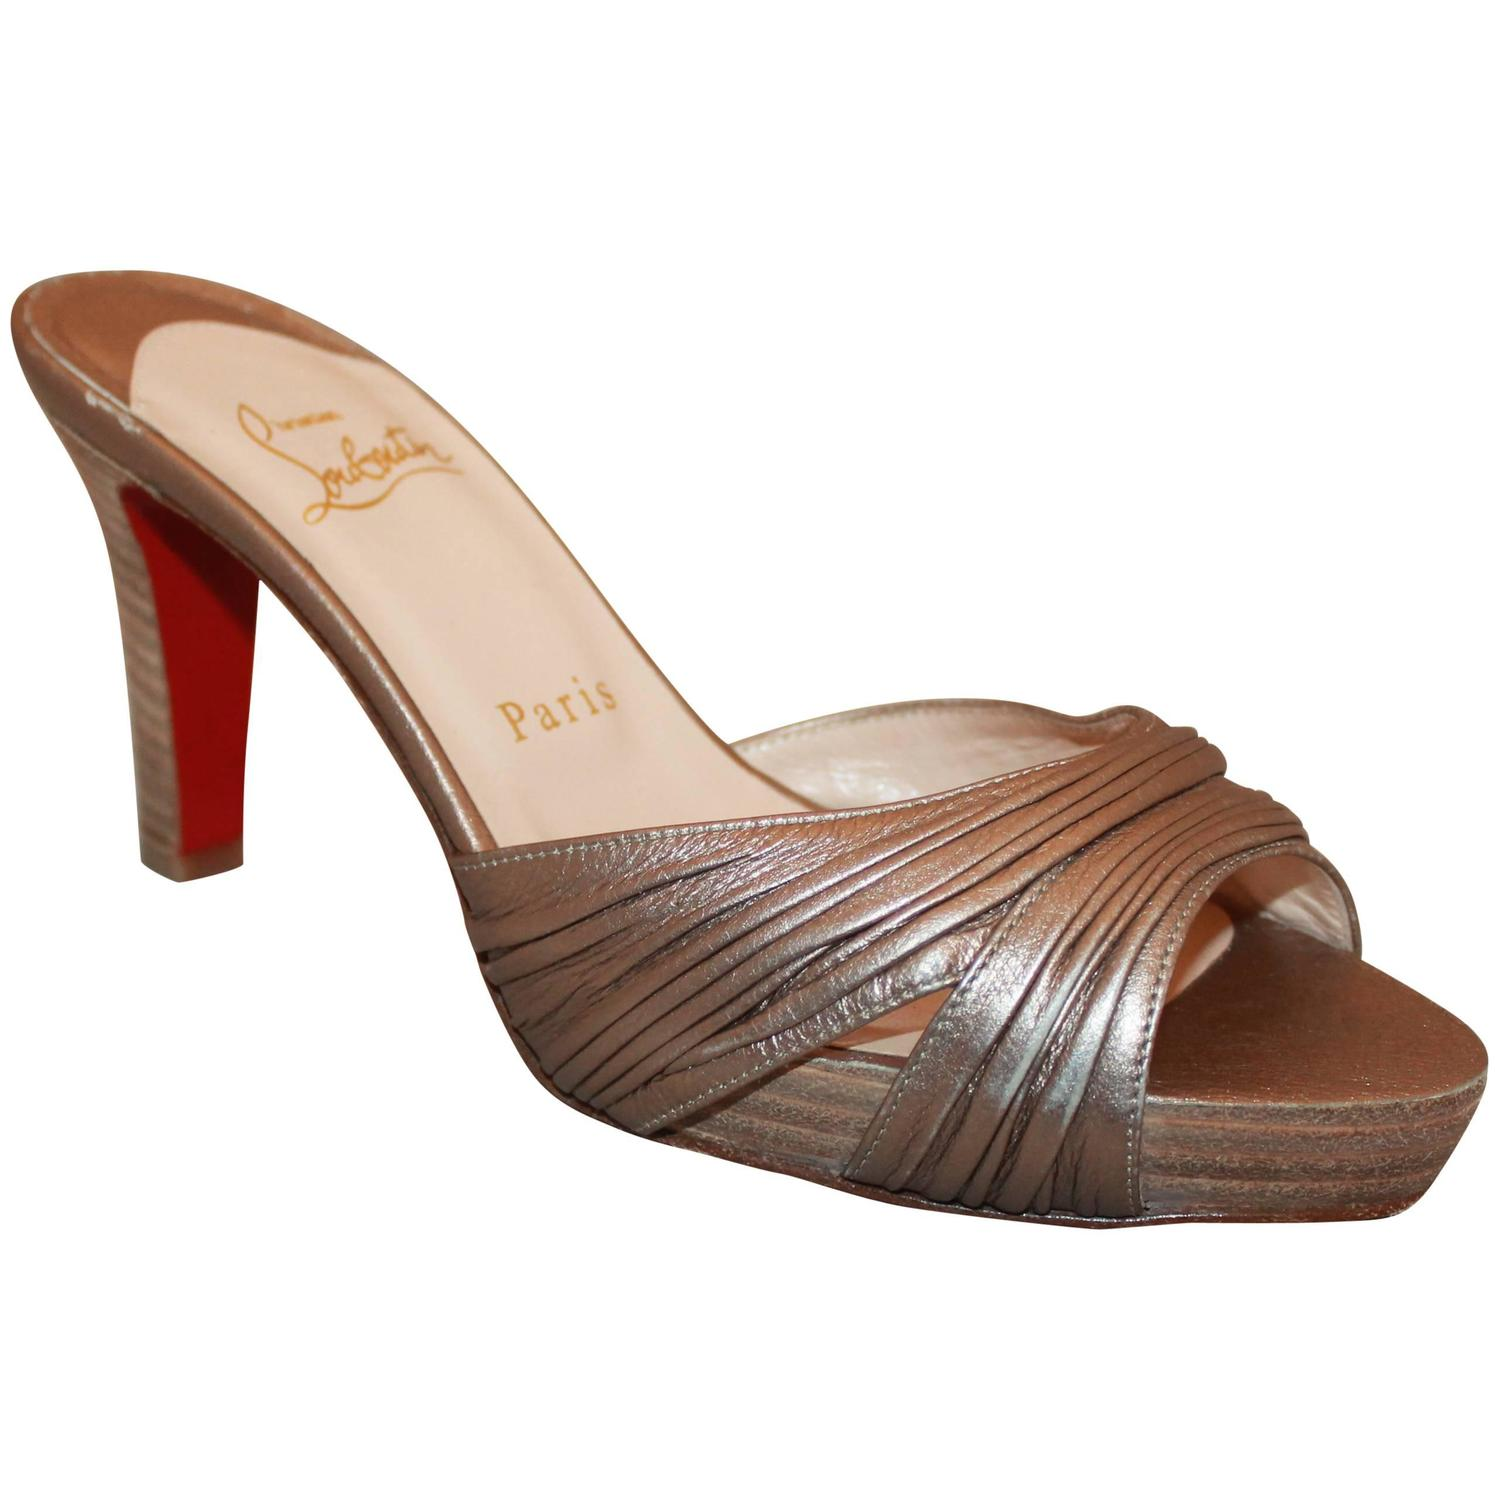 pink louboutins shoes - Vintage Christian Louboutin Shoes - 39 For Sale at 1stdibs